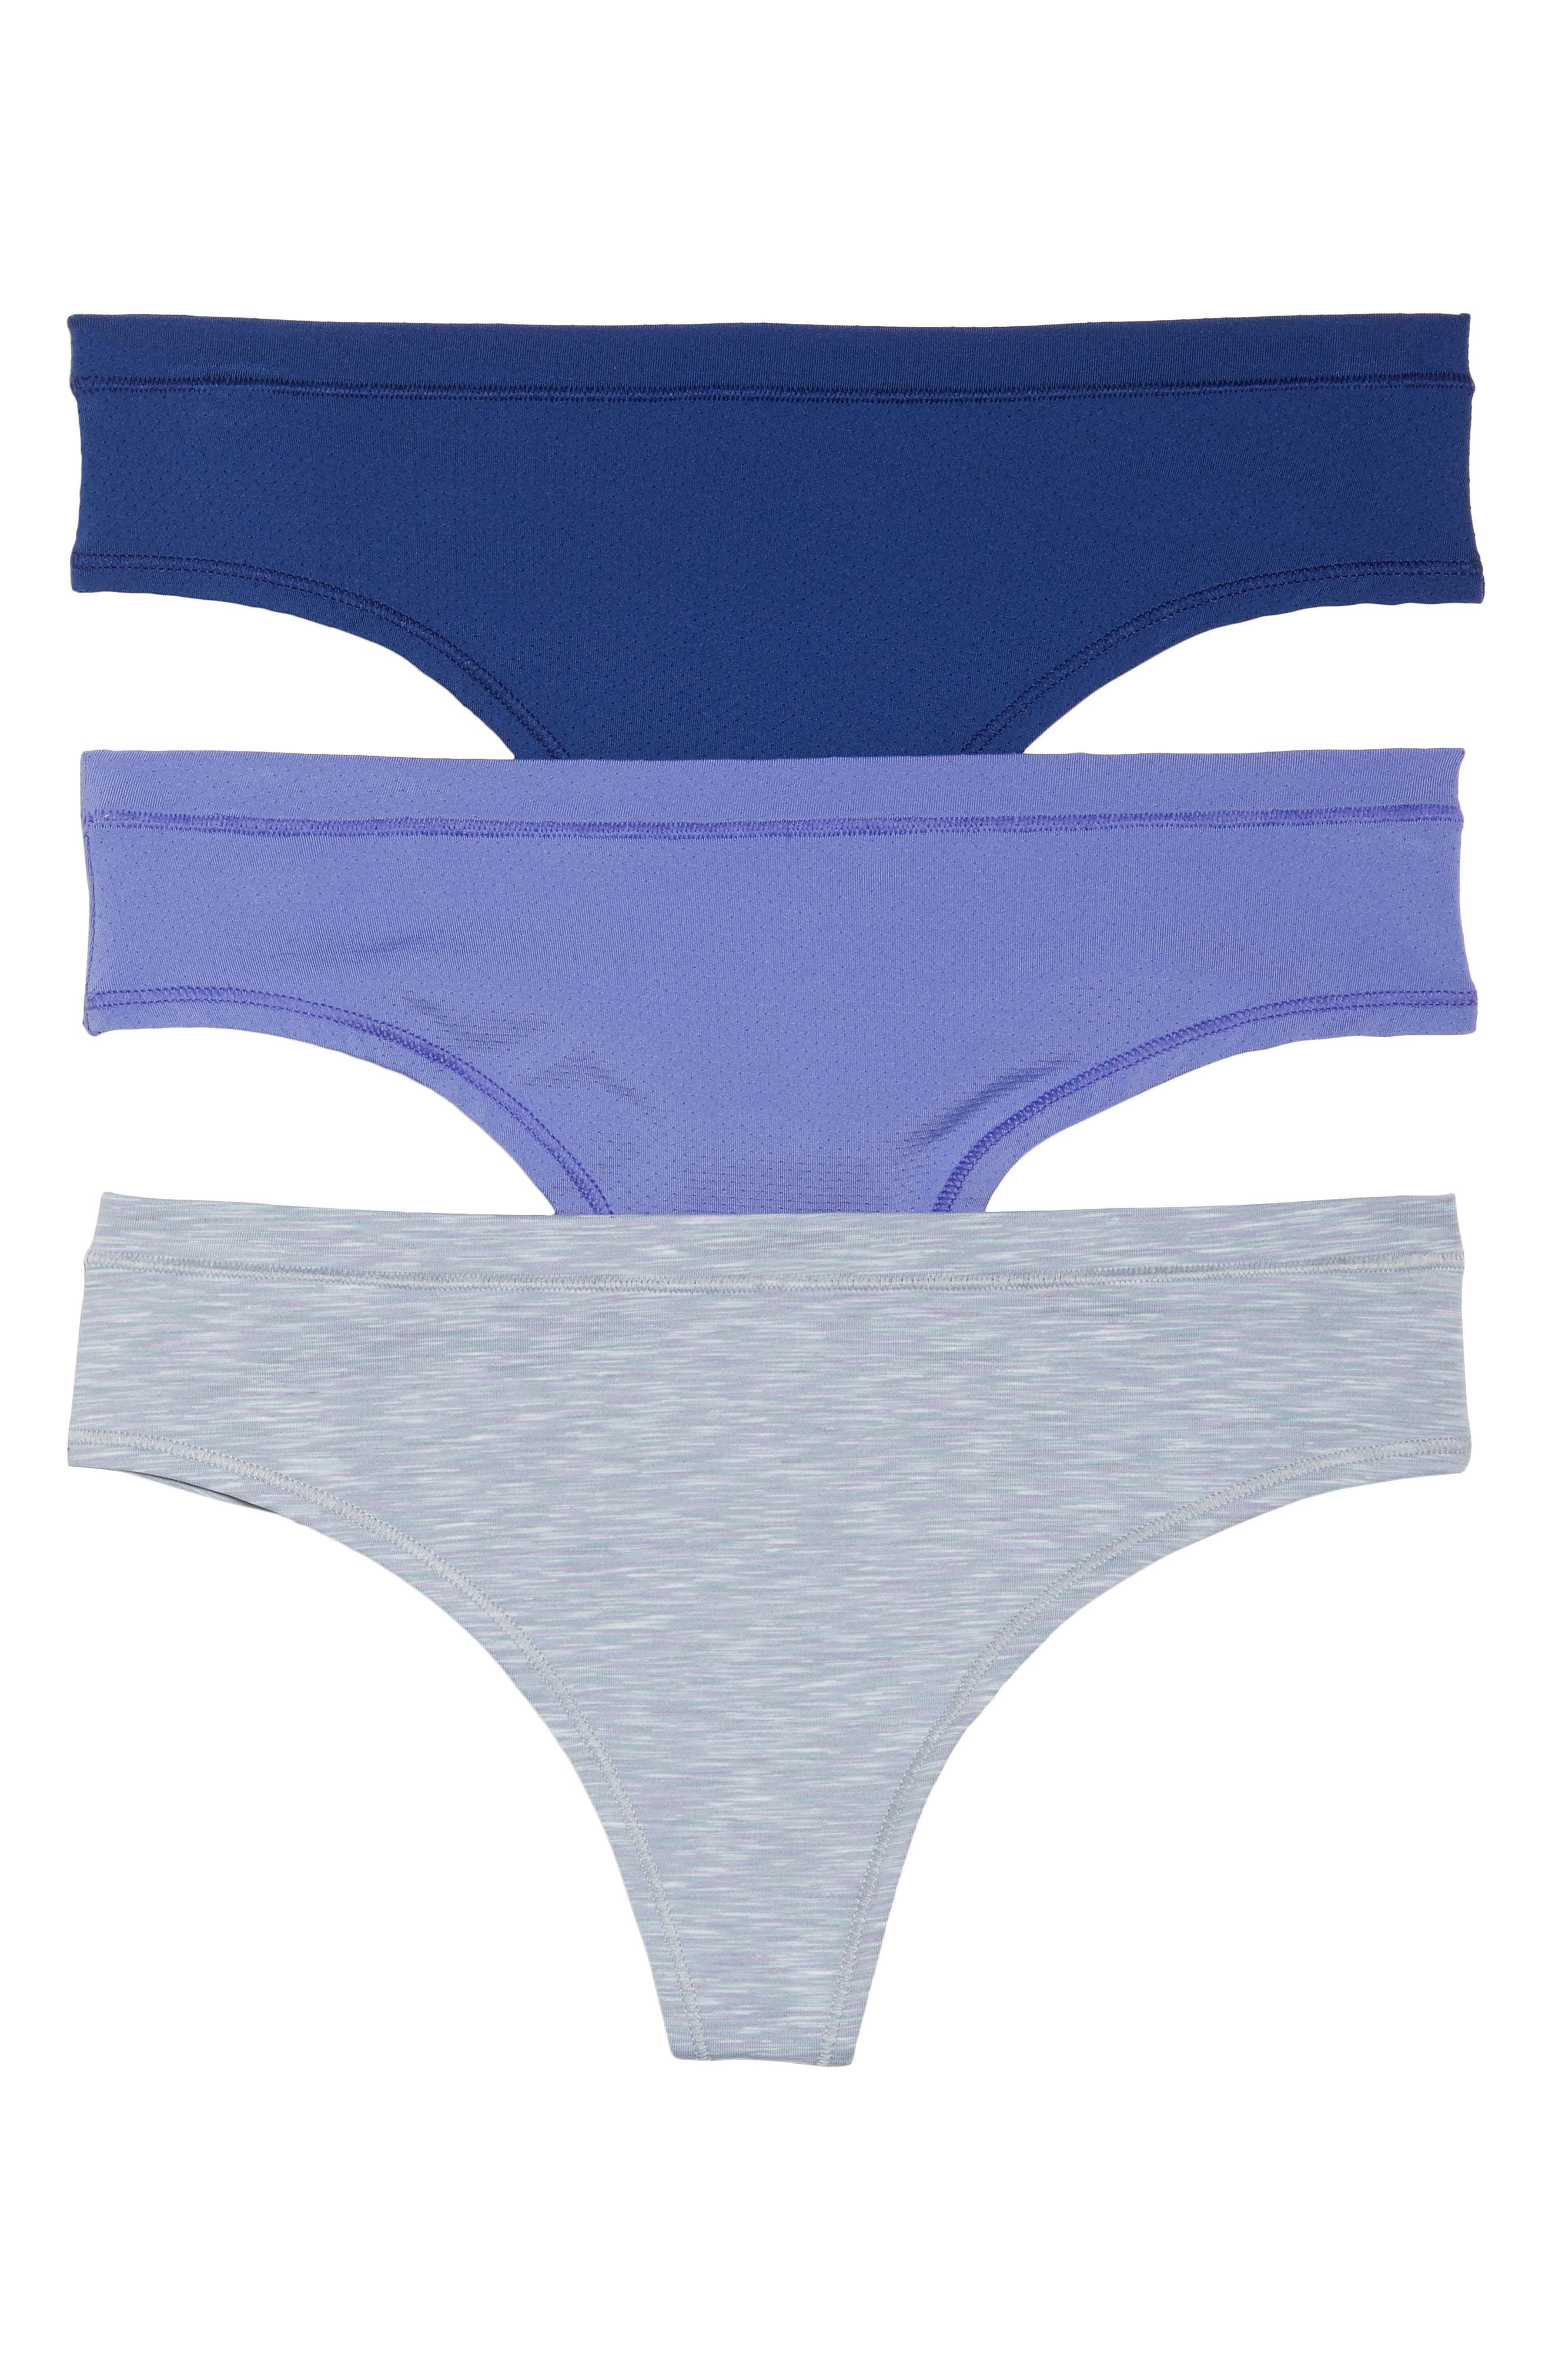 Alternate Image 1 Selected - Zella Body Active 3-Pack Thongs